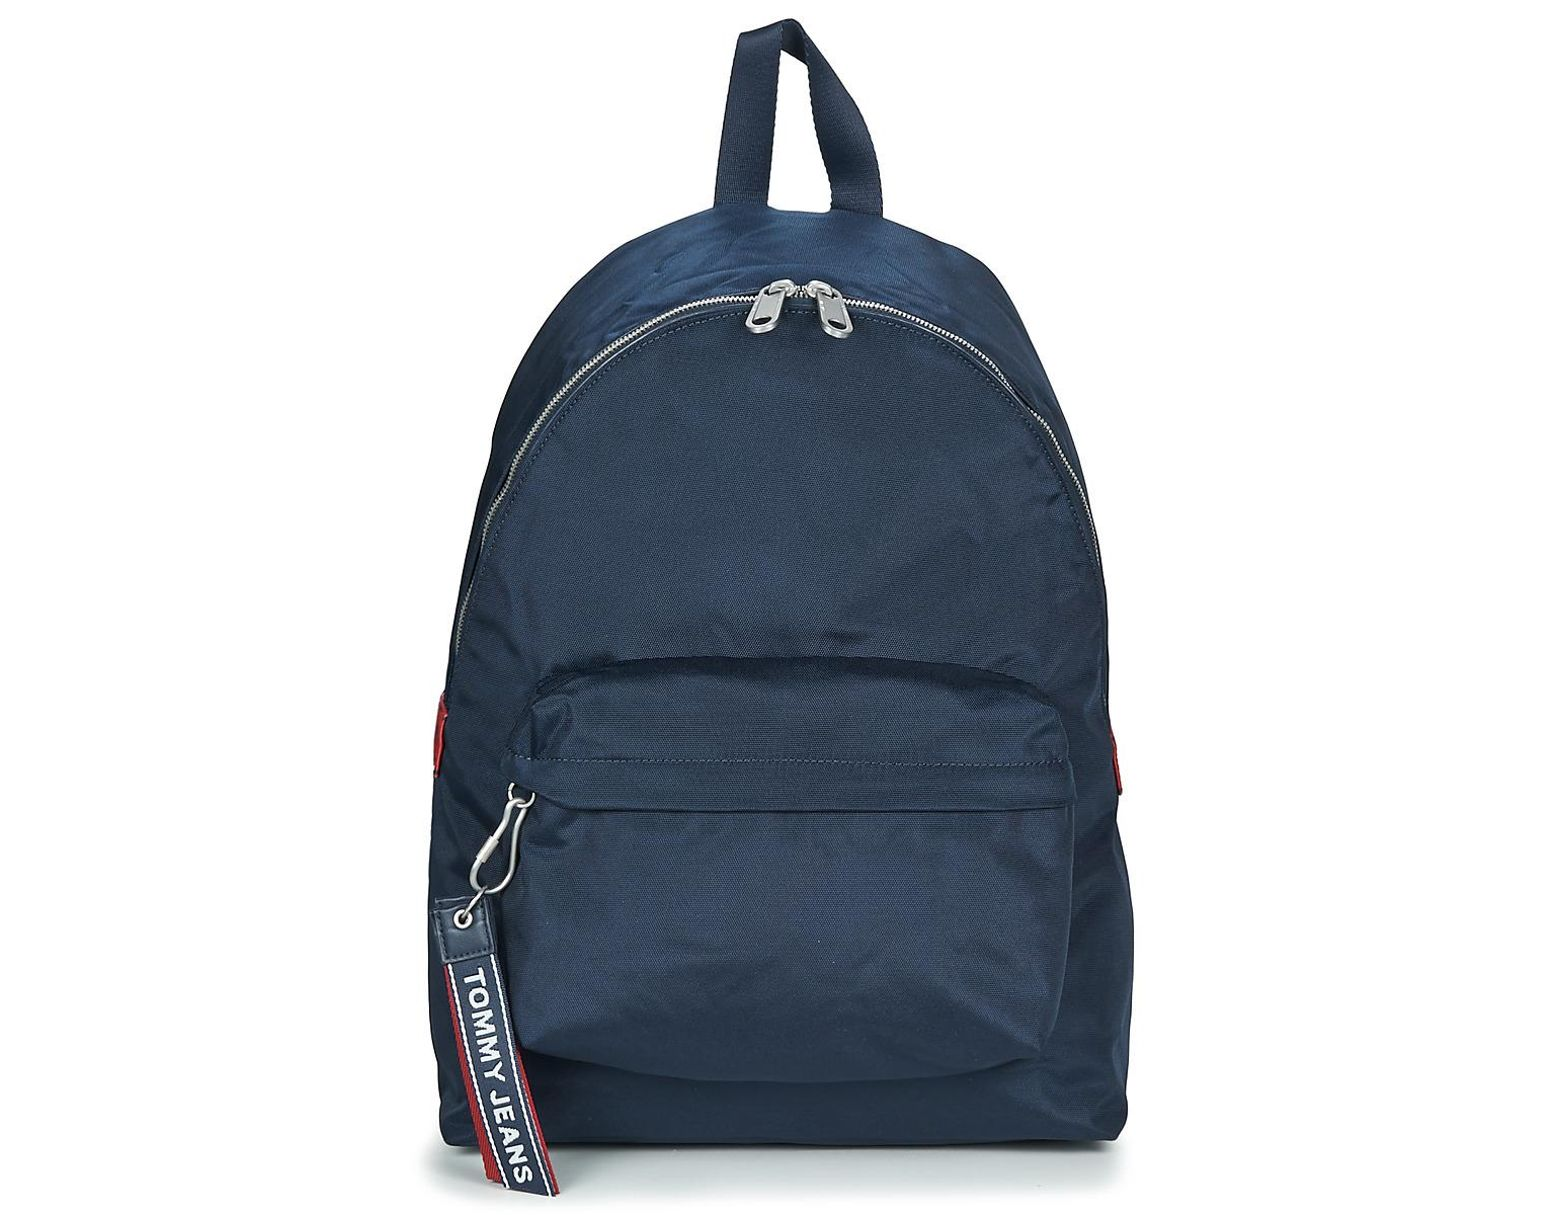 9d64635f442 Tommy Hilfiger Tju Logo Tape Bac... Backpack in Blue for Men - Lyst